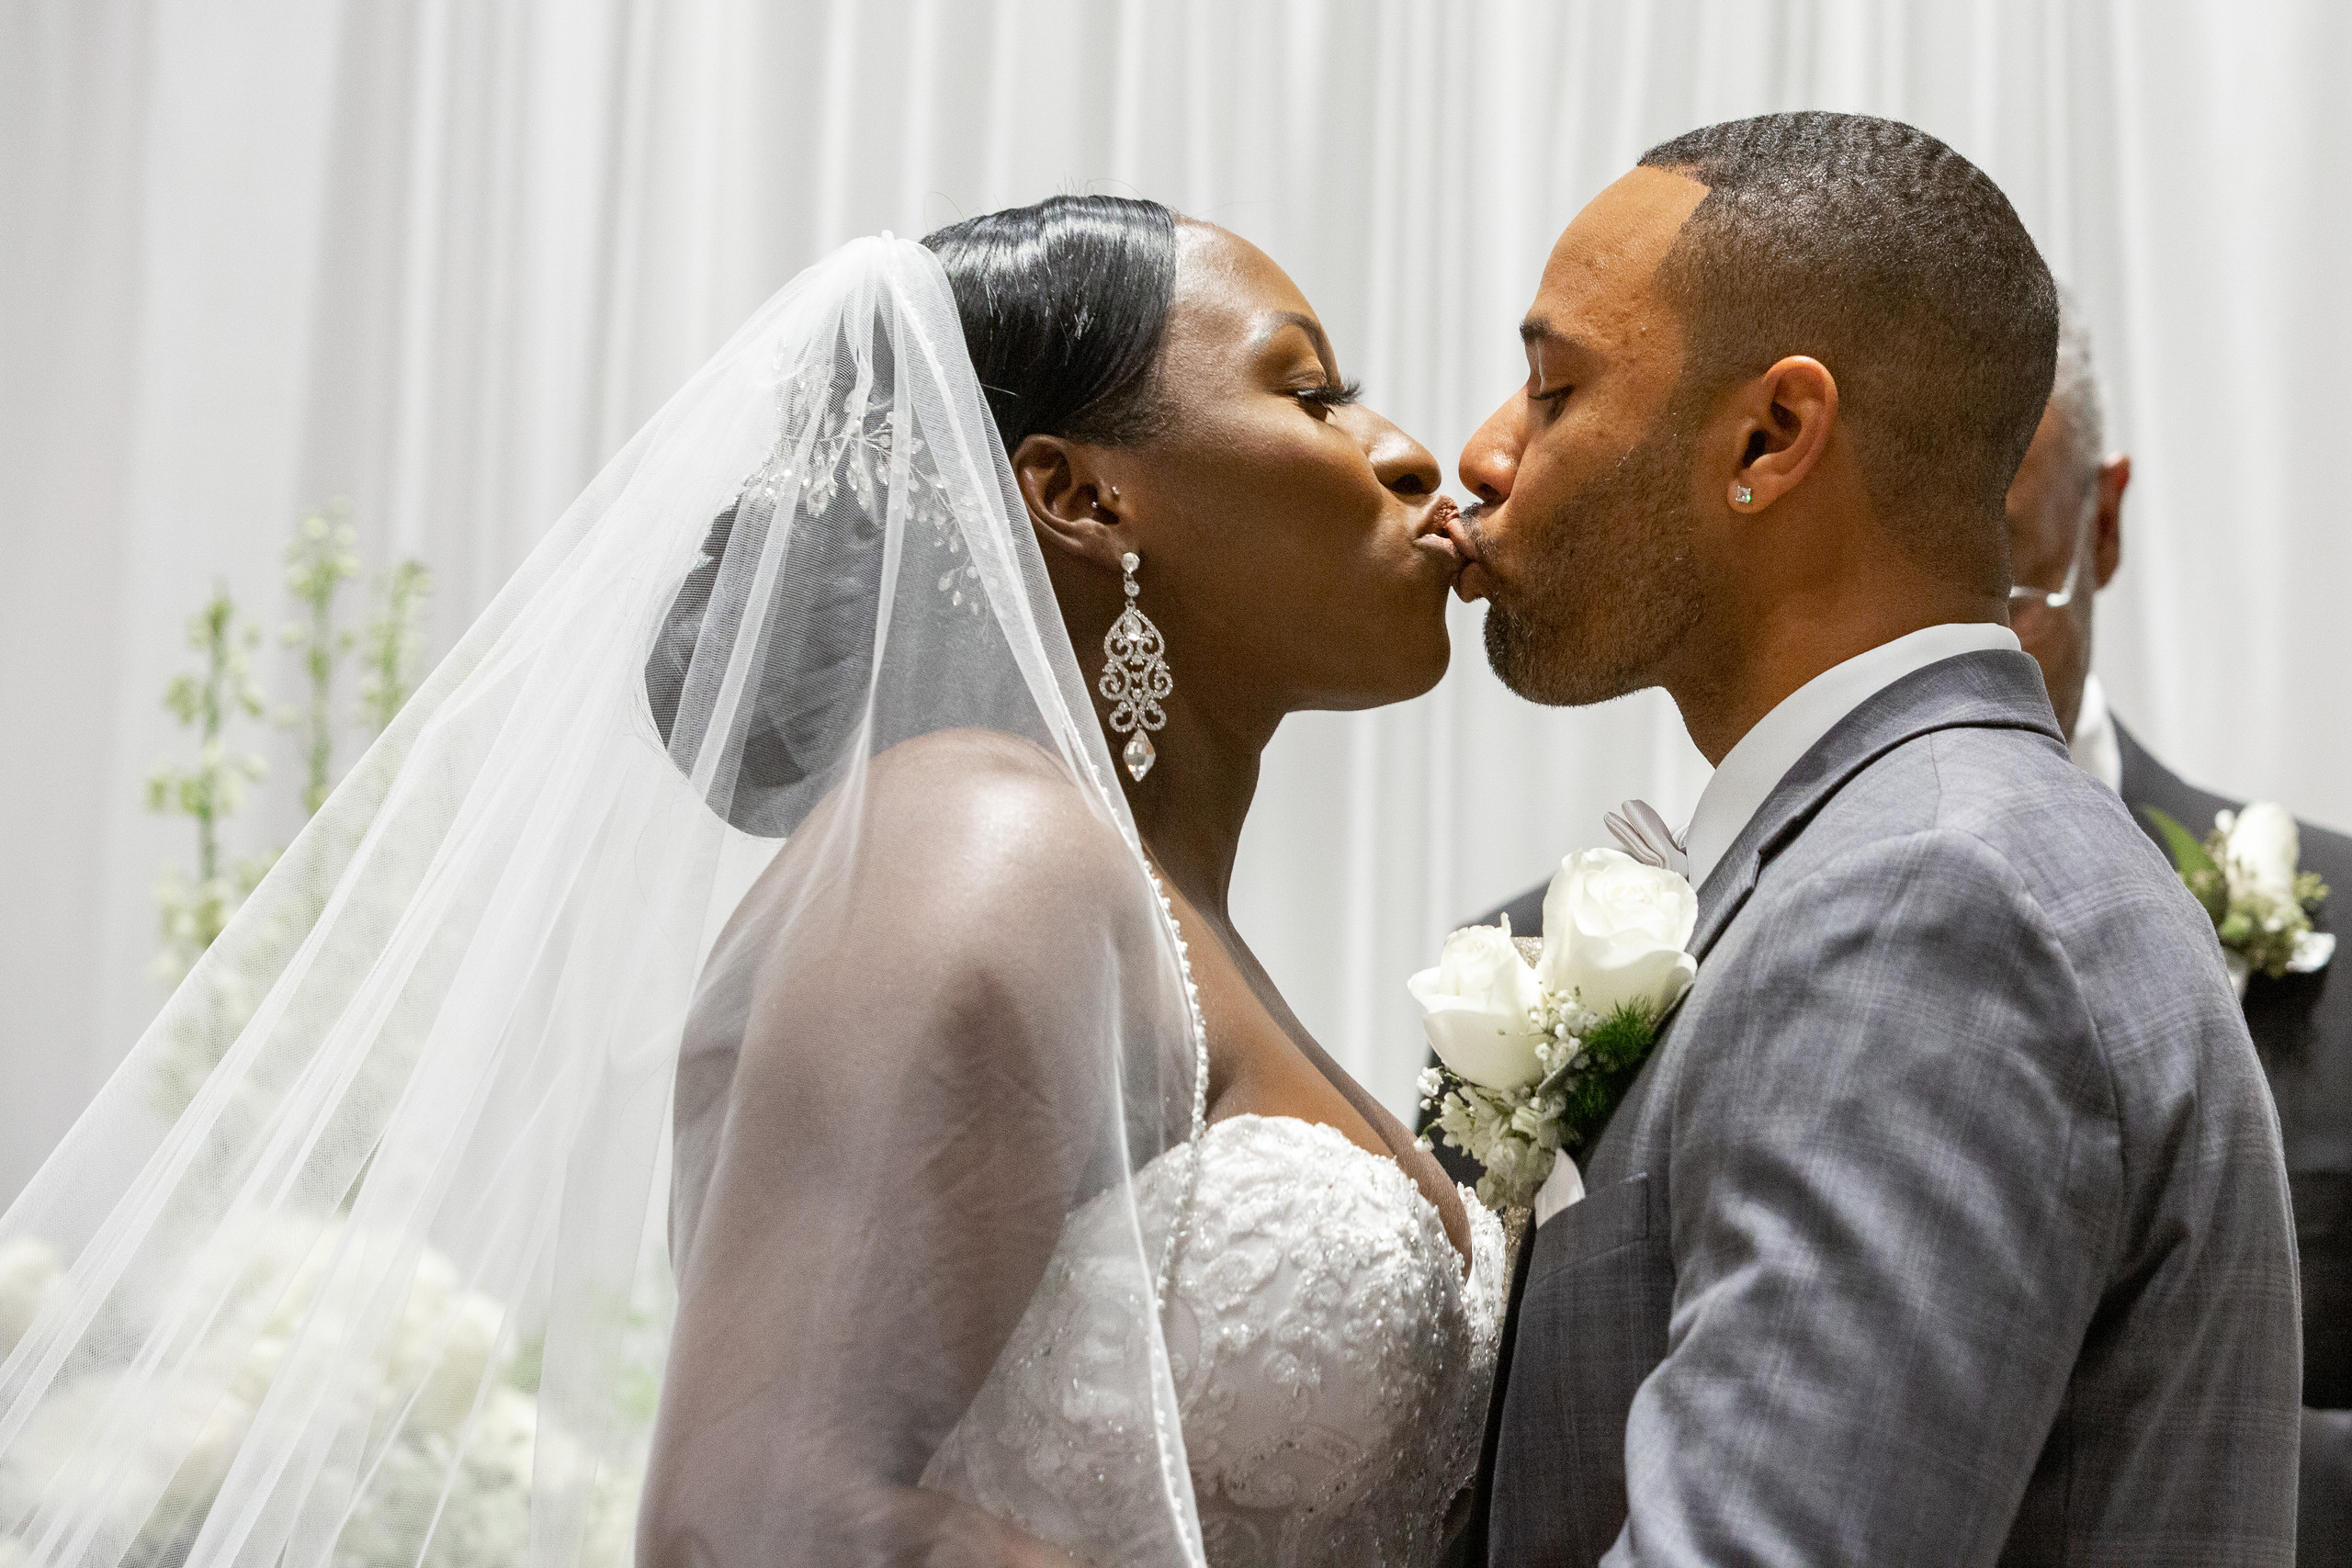 The bride and groom share their first kiss as husband and wife during the wedding ceremony at the Hilton Main in Norfolk, Virginia.